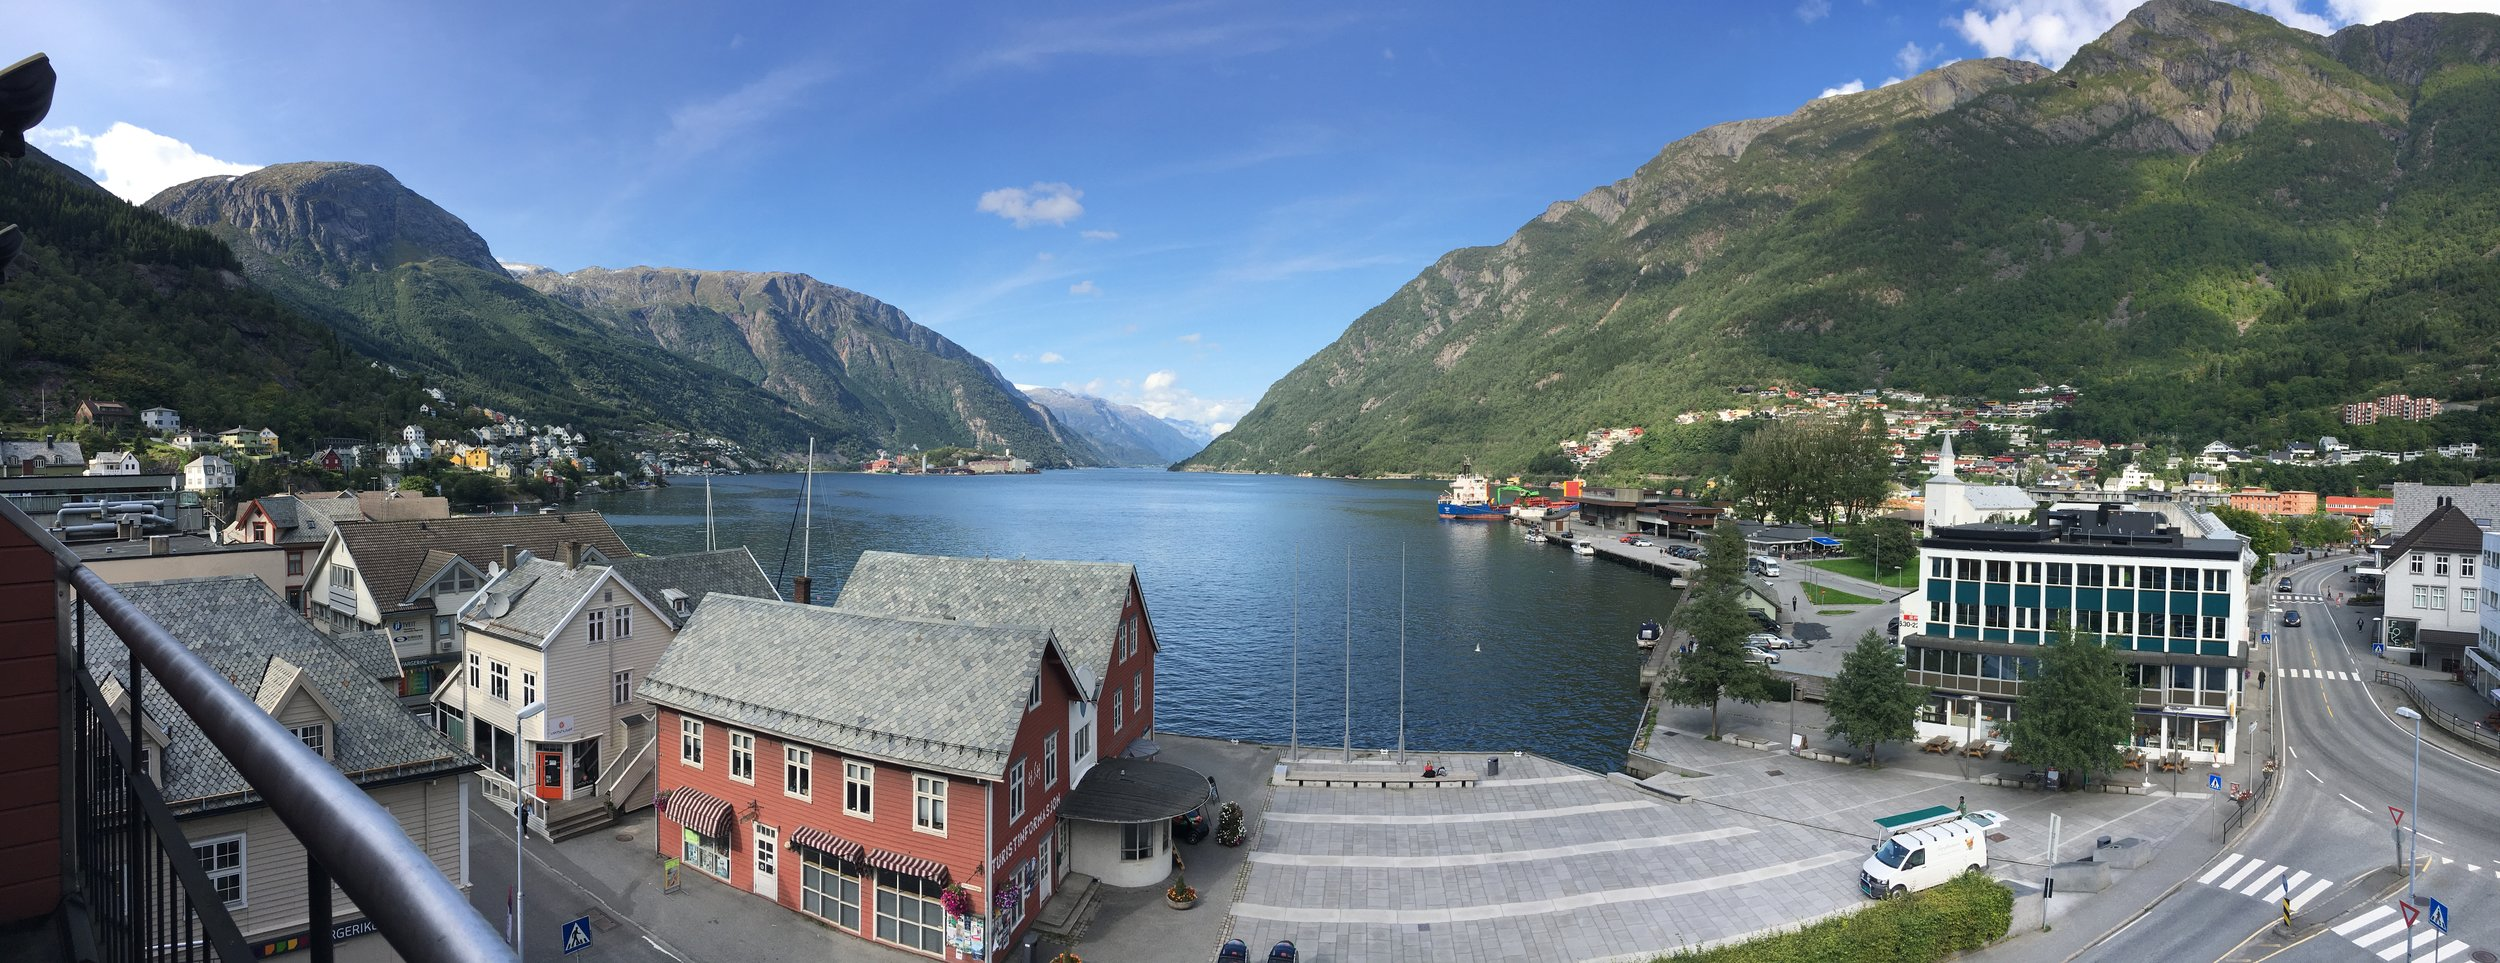 View from my hotel room at the Hardanger Hotel in Odda.